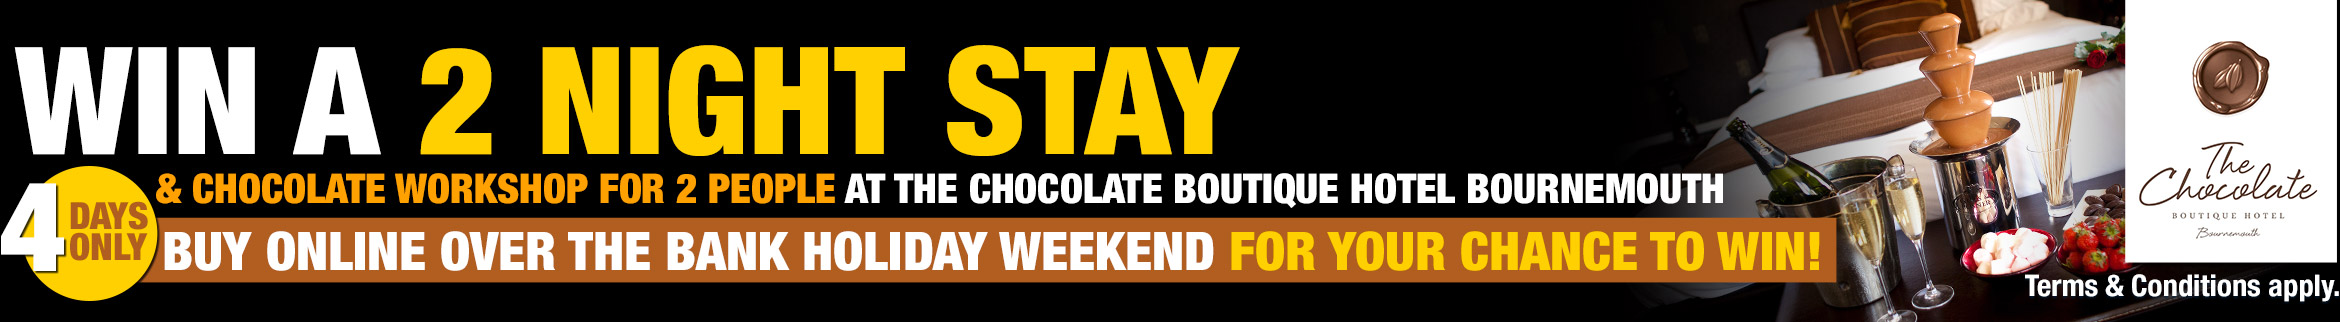 Win a 2 night stay & chocolate workshop for 2 people at the Chocolate Boutique Hotel, Bournemouth